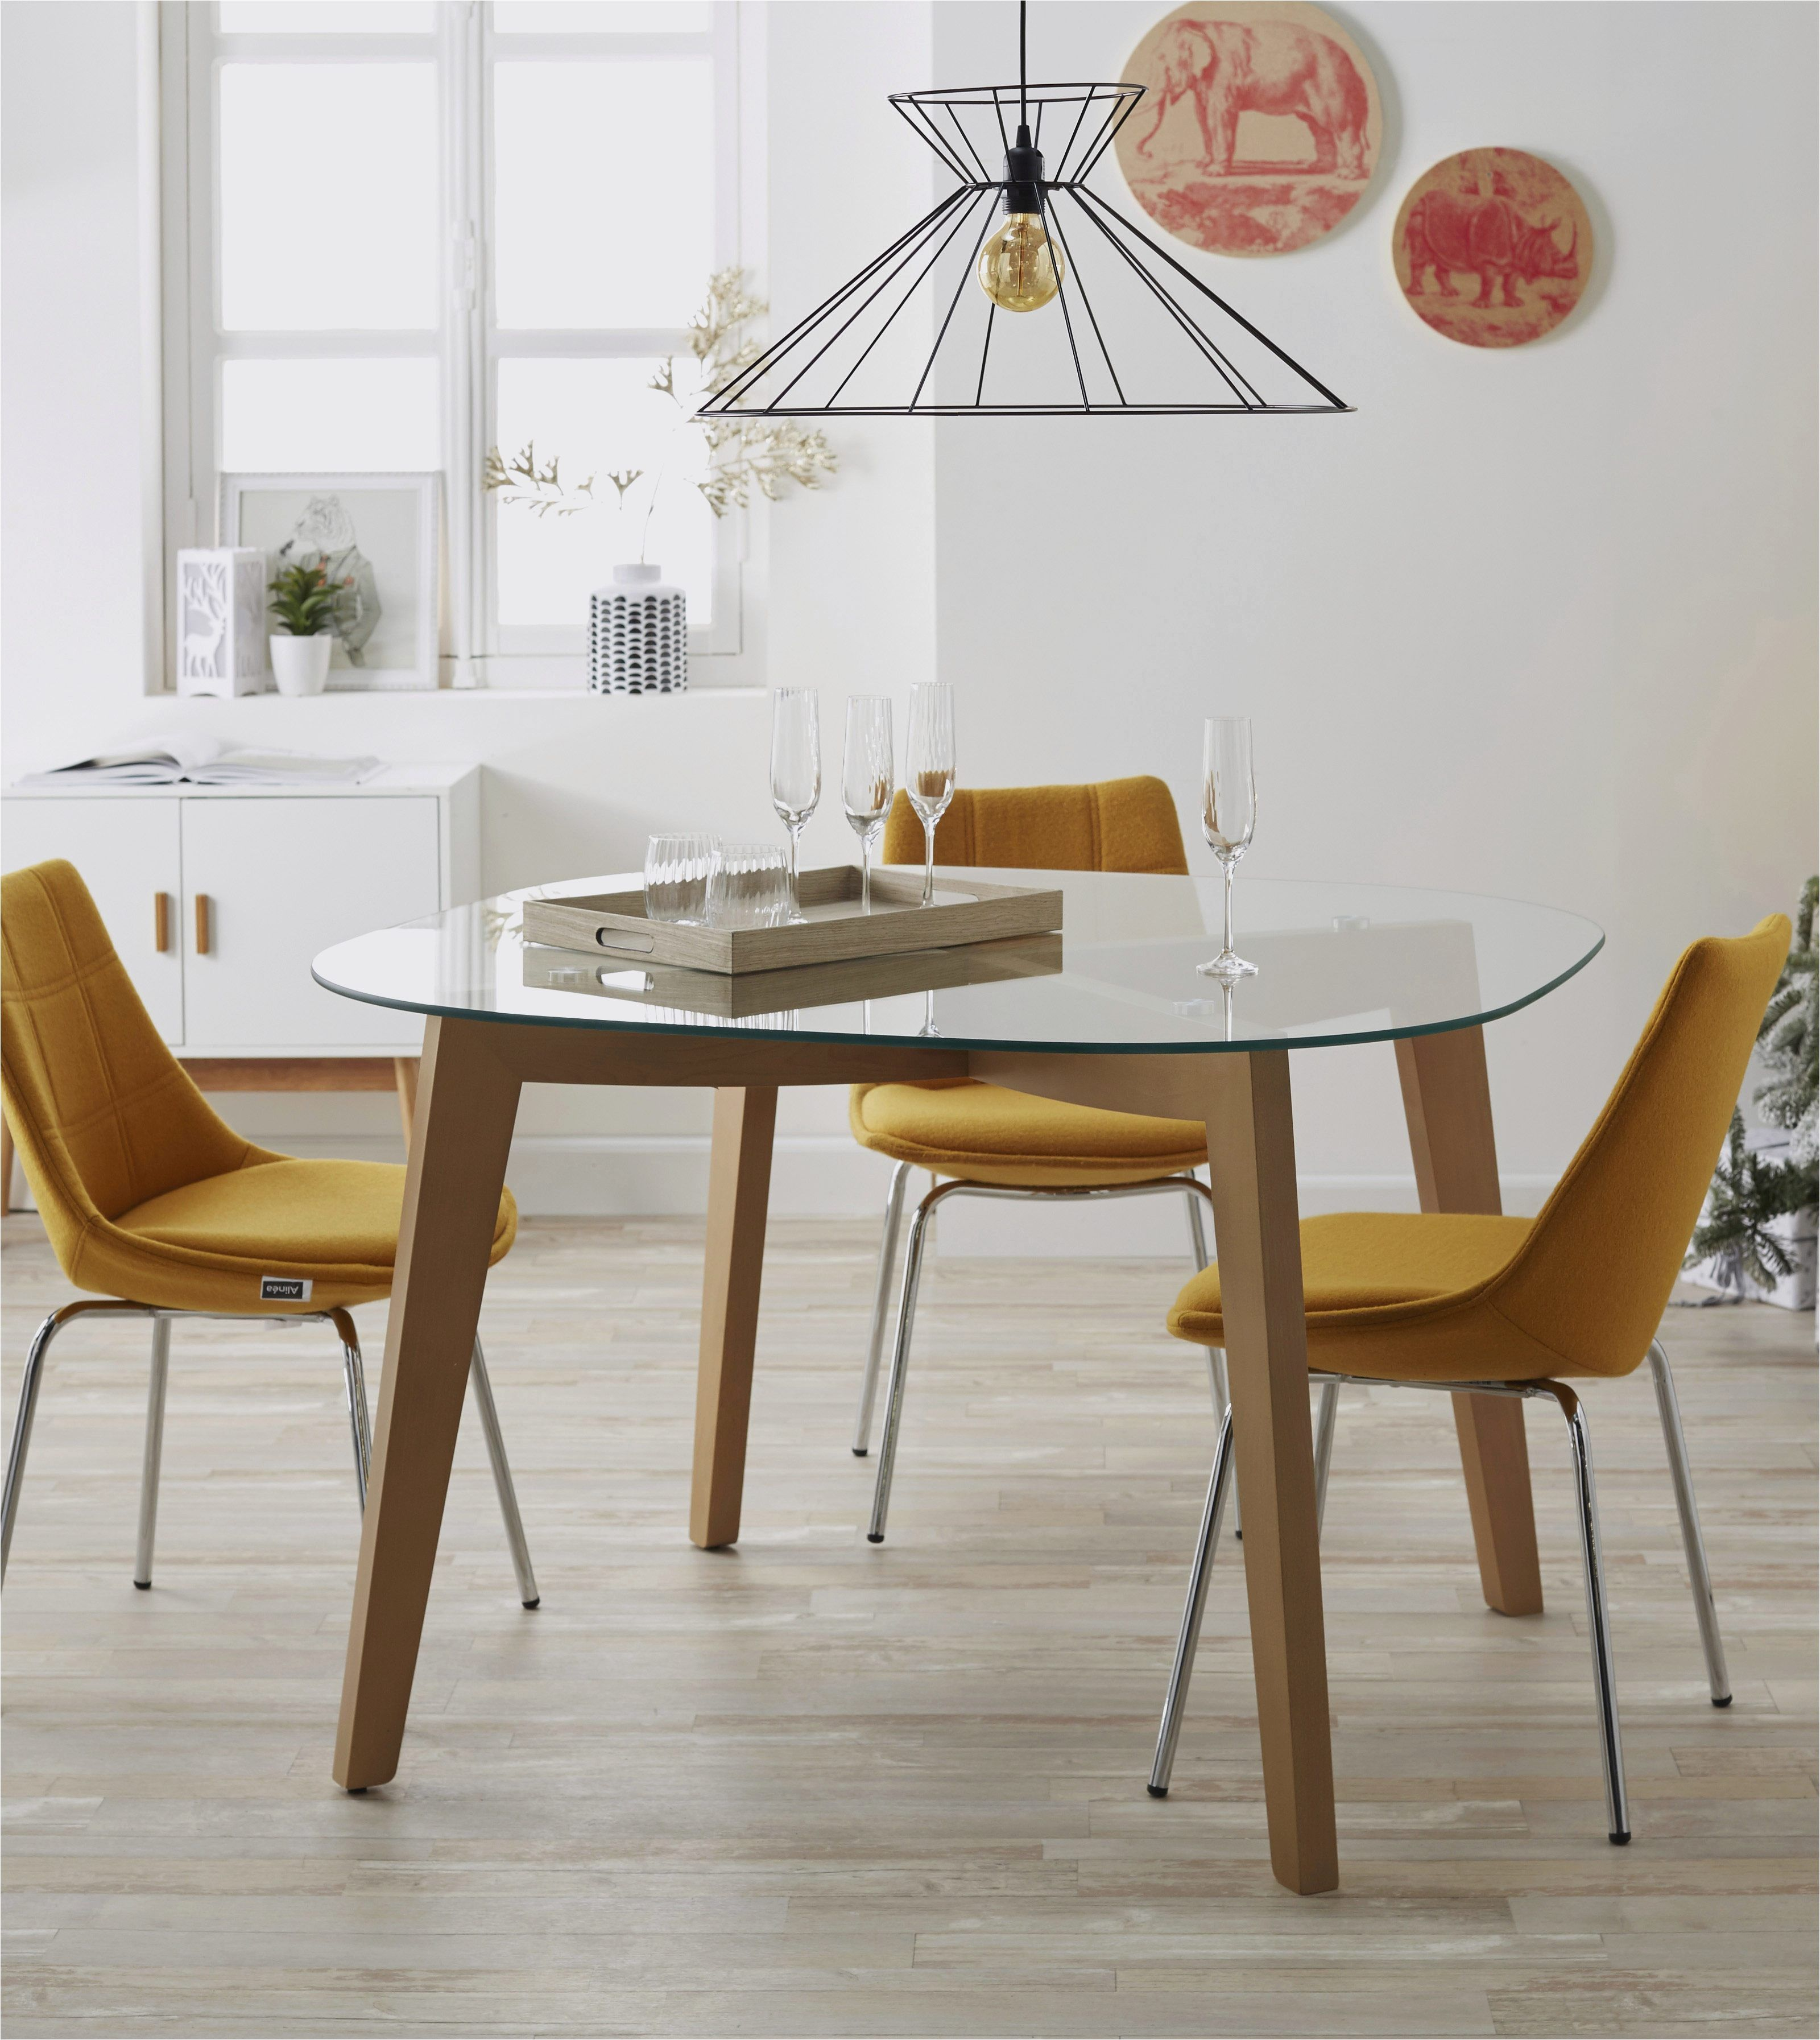 Fresh Le Bon Coin Ameublement Aube Dining Furniture Round Glass Table Home Decor